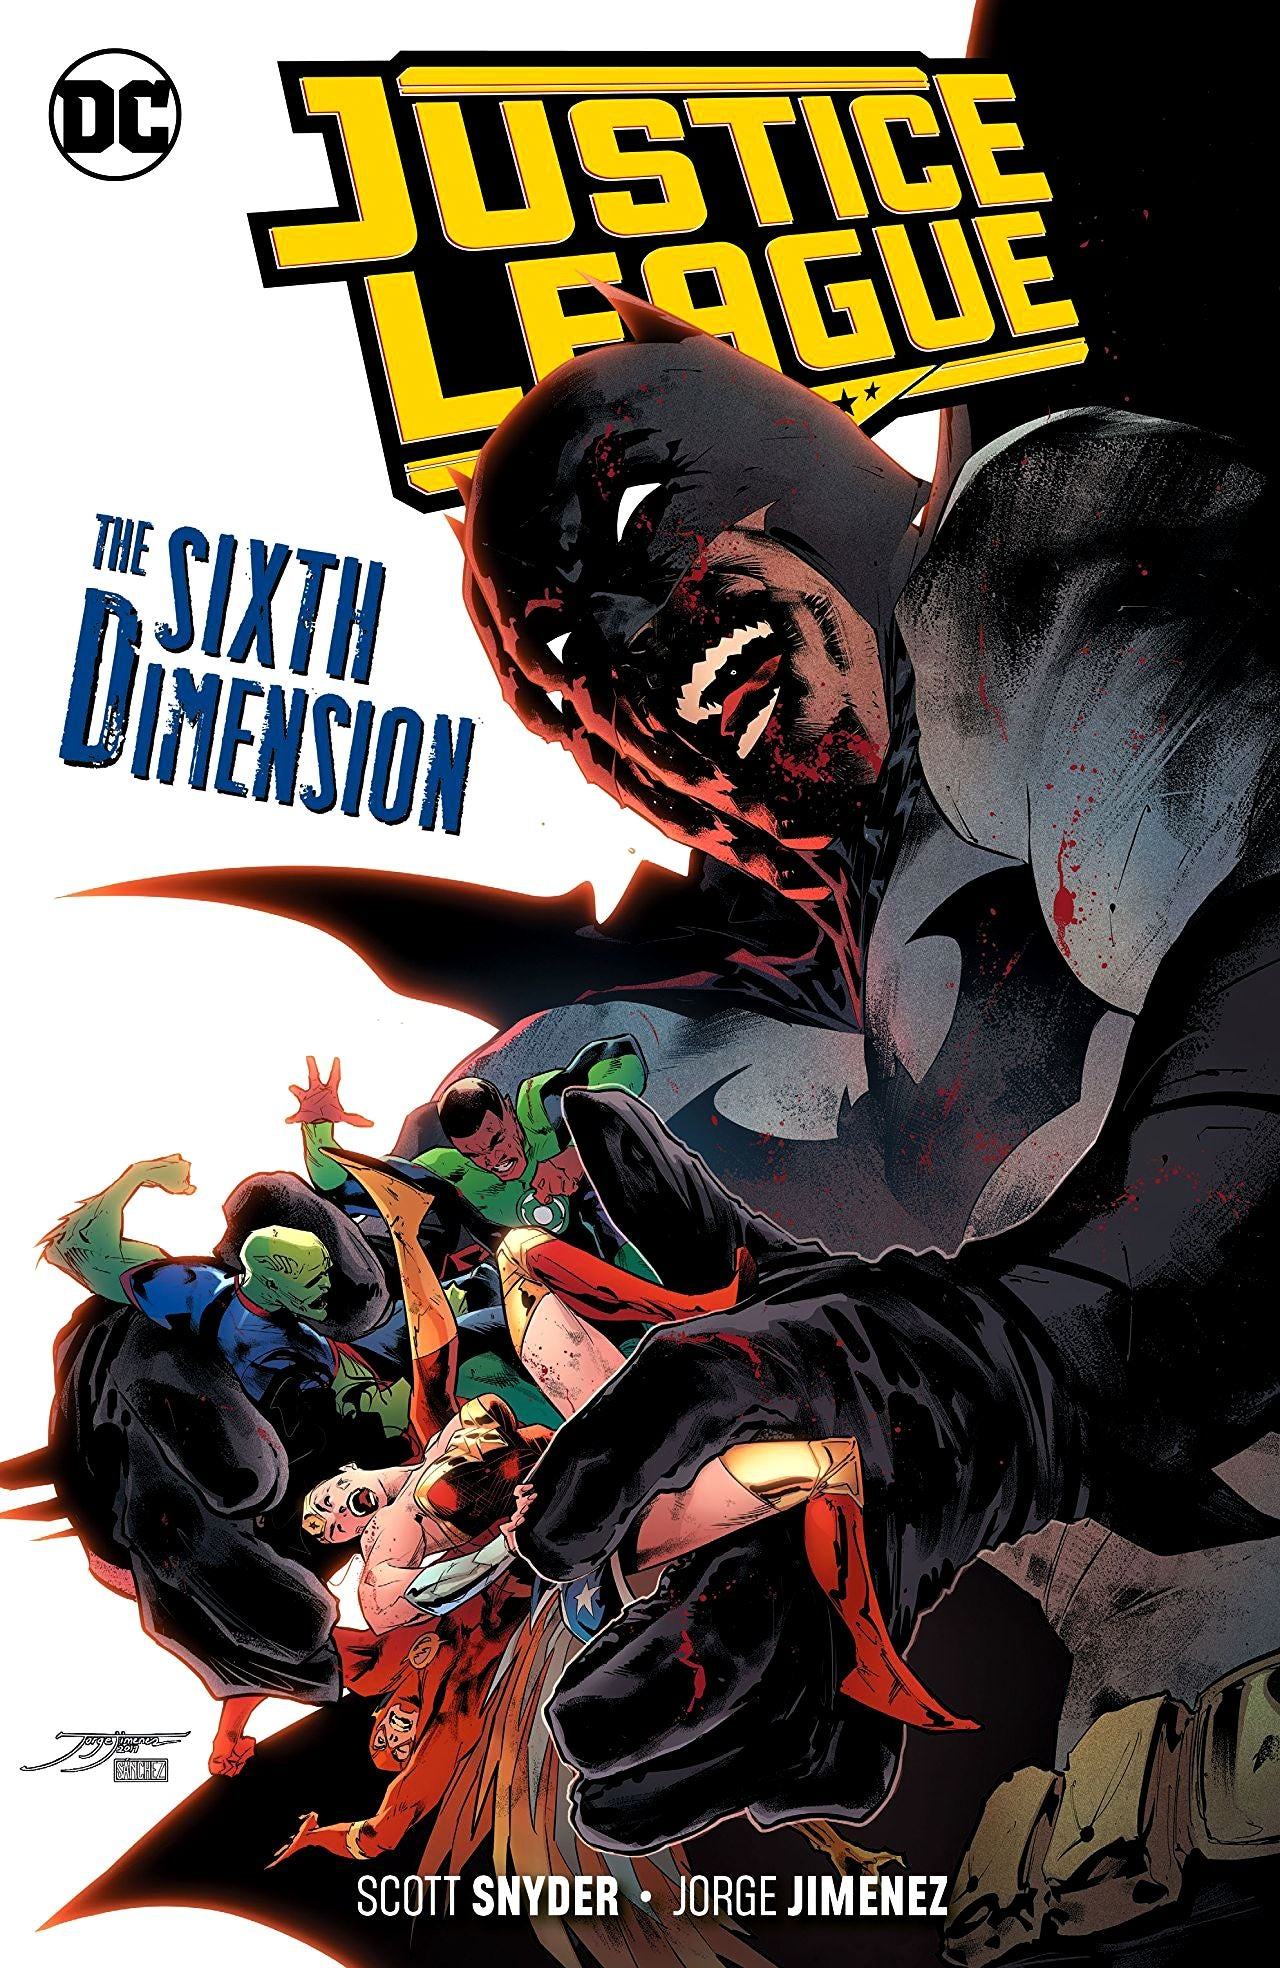 Justice League (2018) Volume 4: The Sixth Dimension